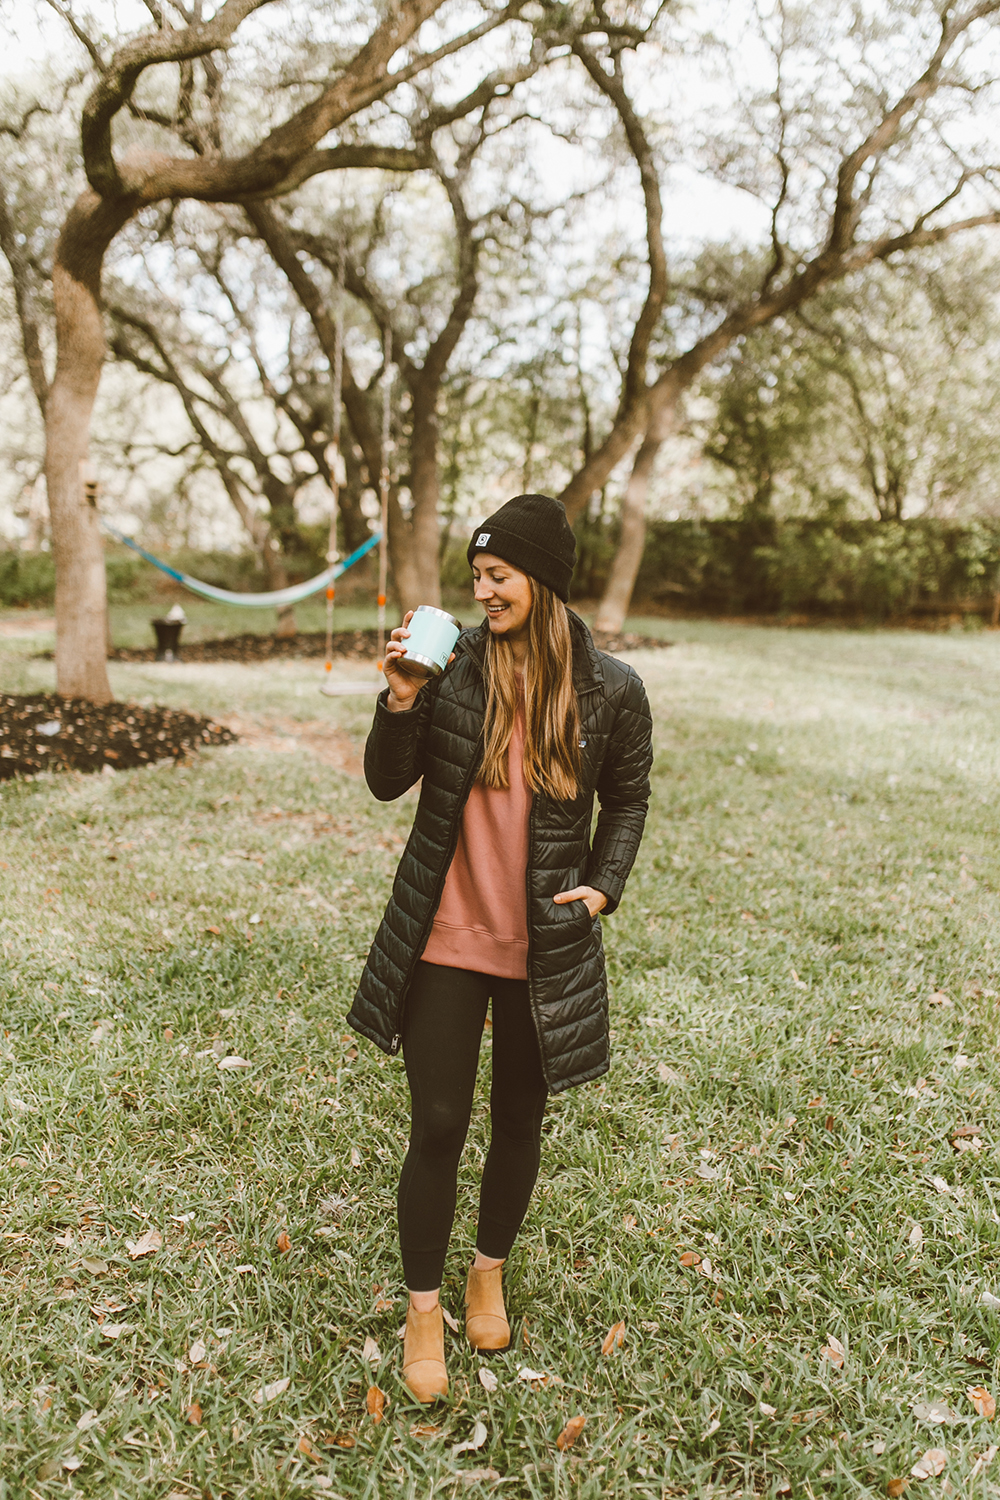 livvyland-blog-olivia-watson-austin-texas-lifestyle-fashion-mom-blog-patagonia-radalie-insulated-parka-jacket-5